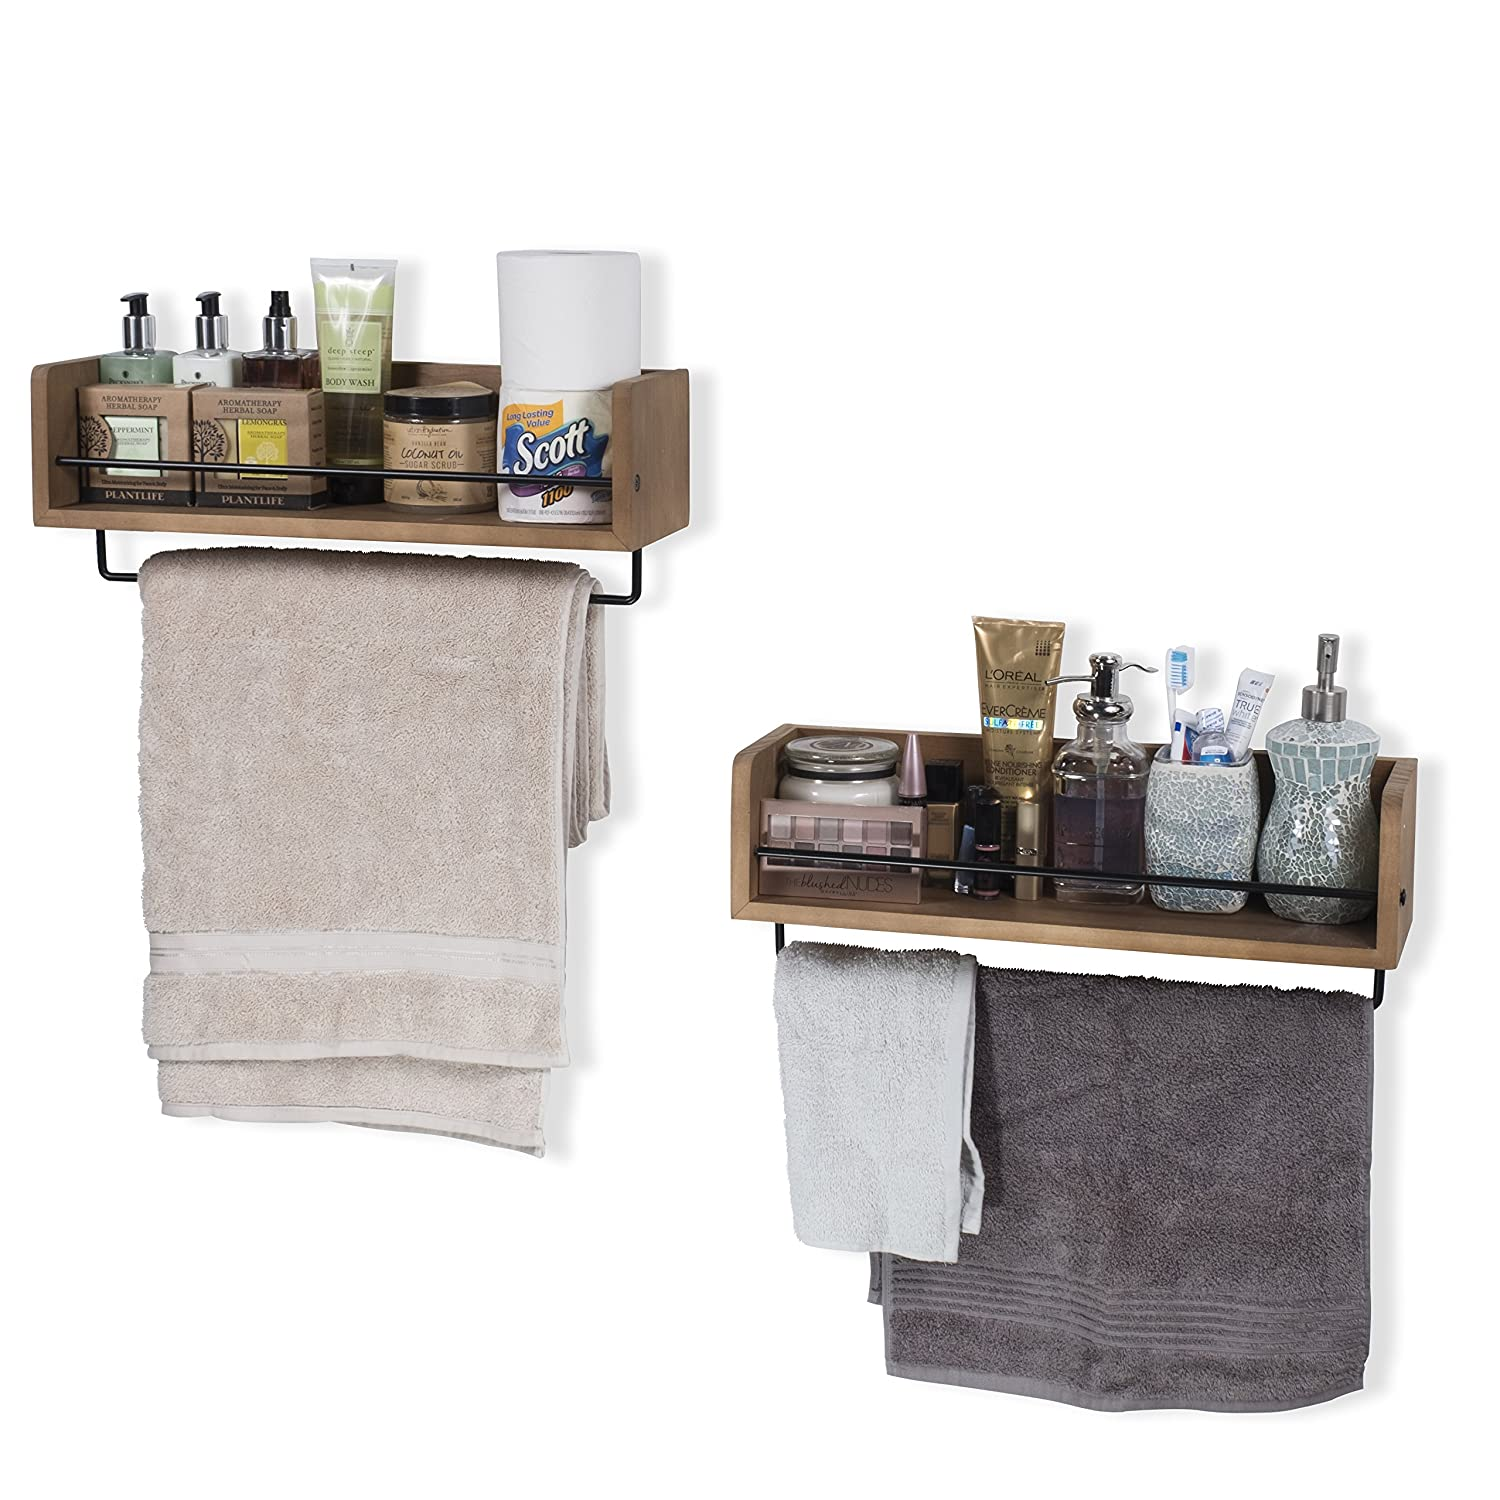 Rustic State Floating Kitchen Wall Mount Shelves Spice Storage Rack with Towel Rail by Set of 2 Walnut Stained ArtifactDesign